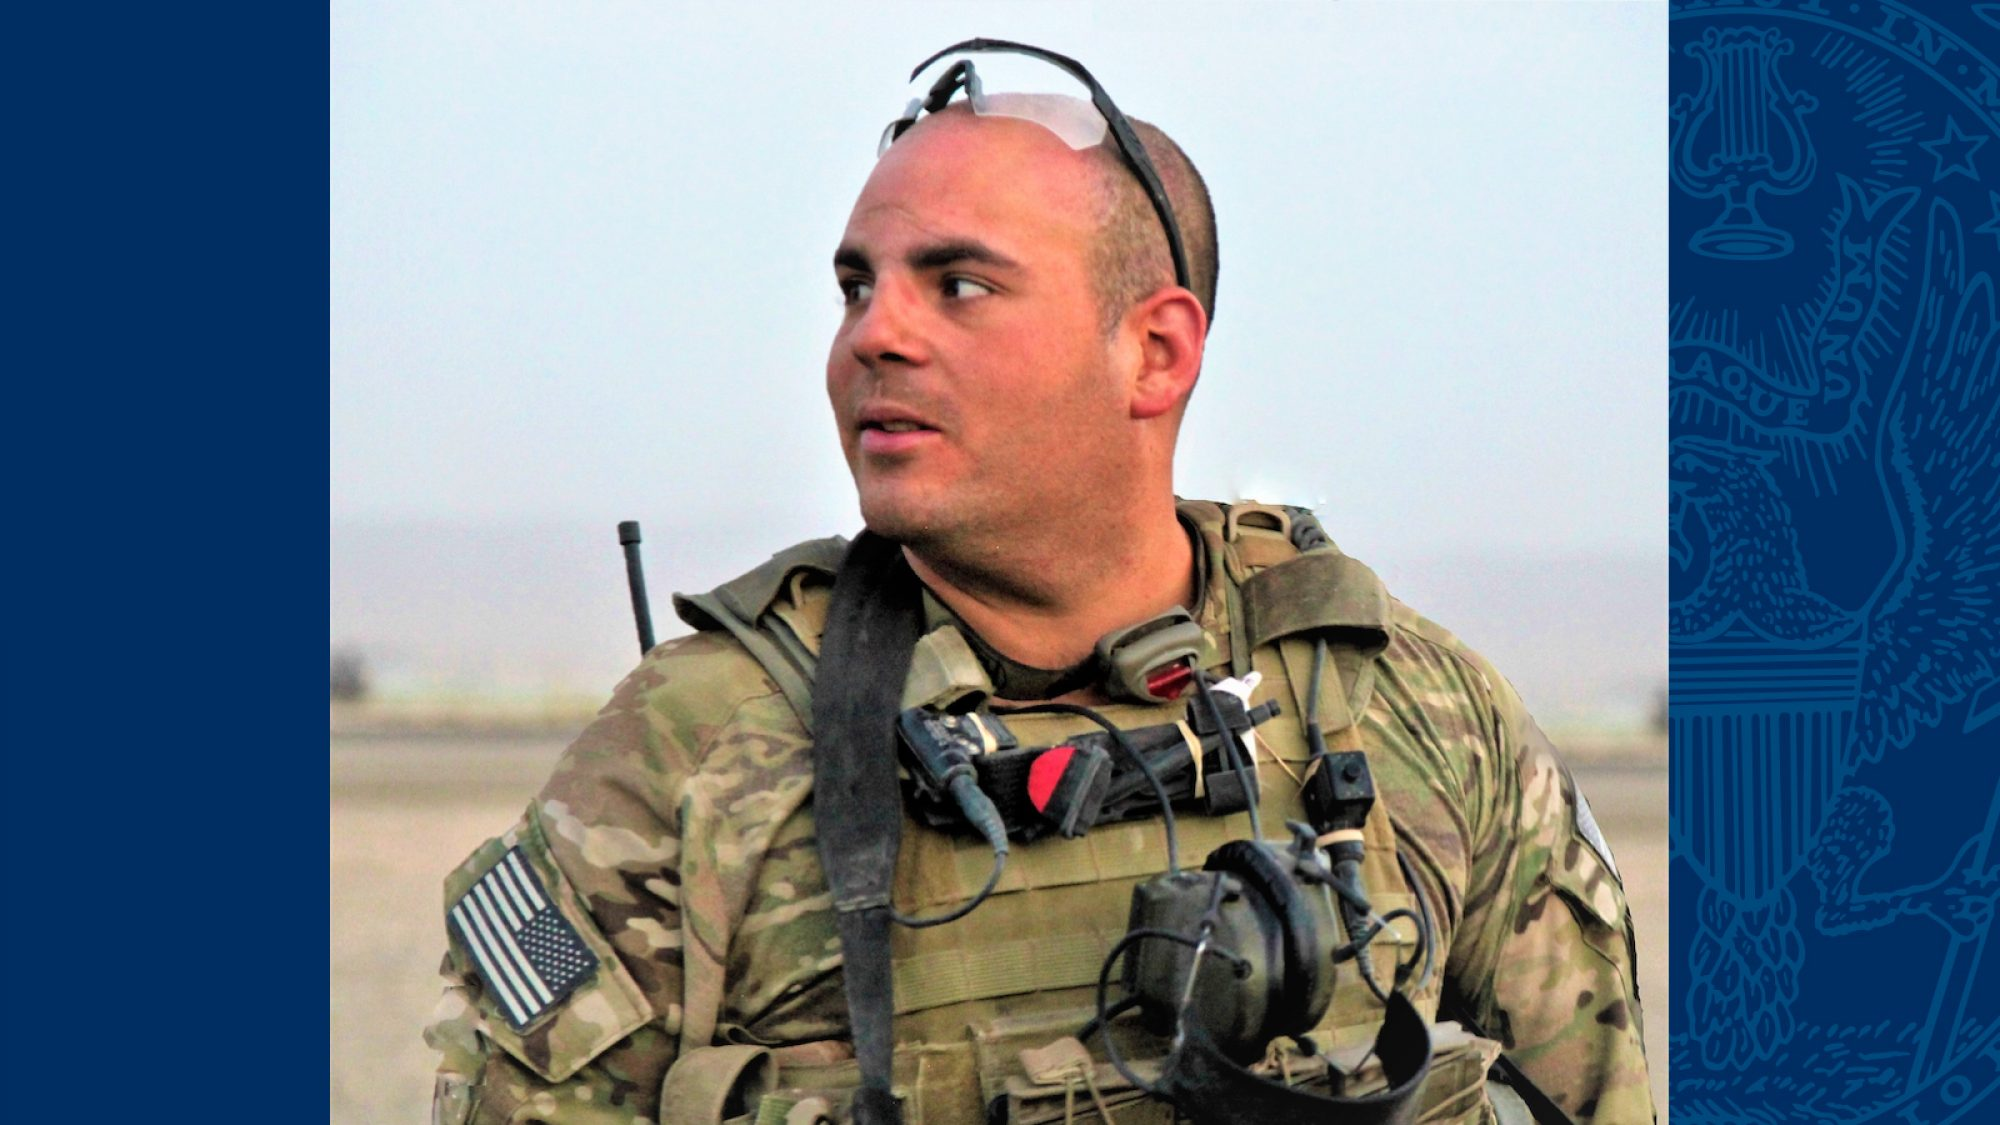 Timothy Torres wears camouflage and equipment